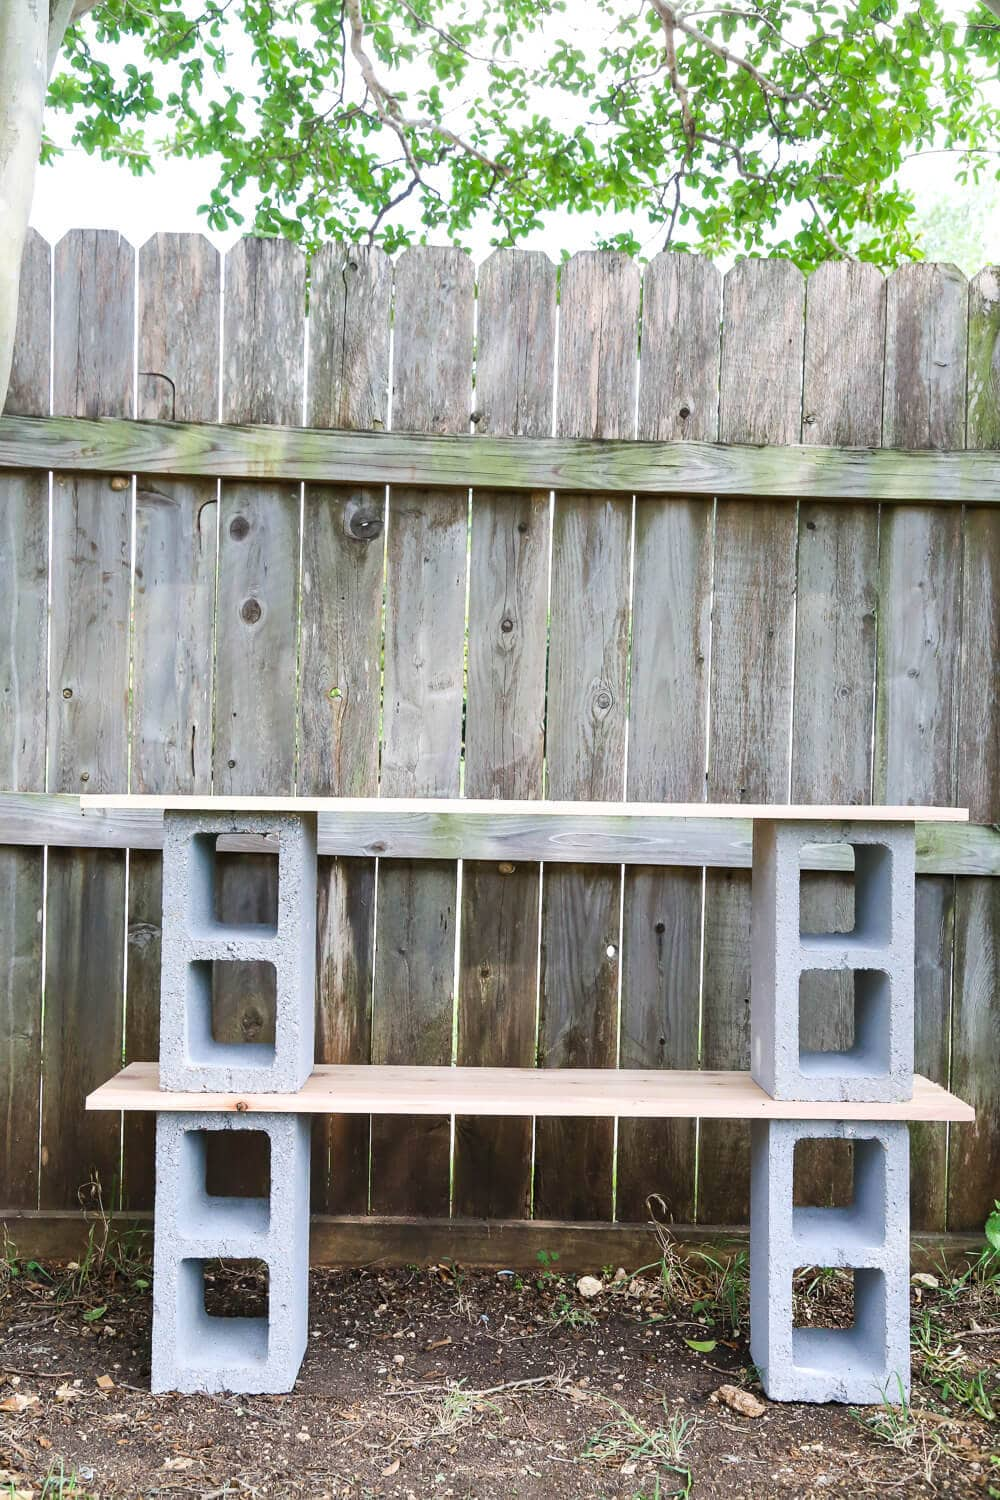 How to build simple cinderblock shelves to hold your plants. A really quick  and simple